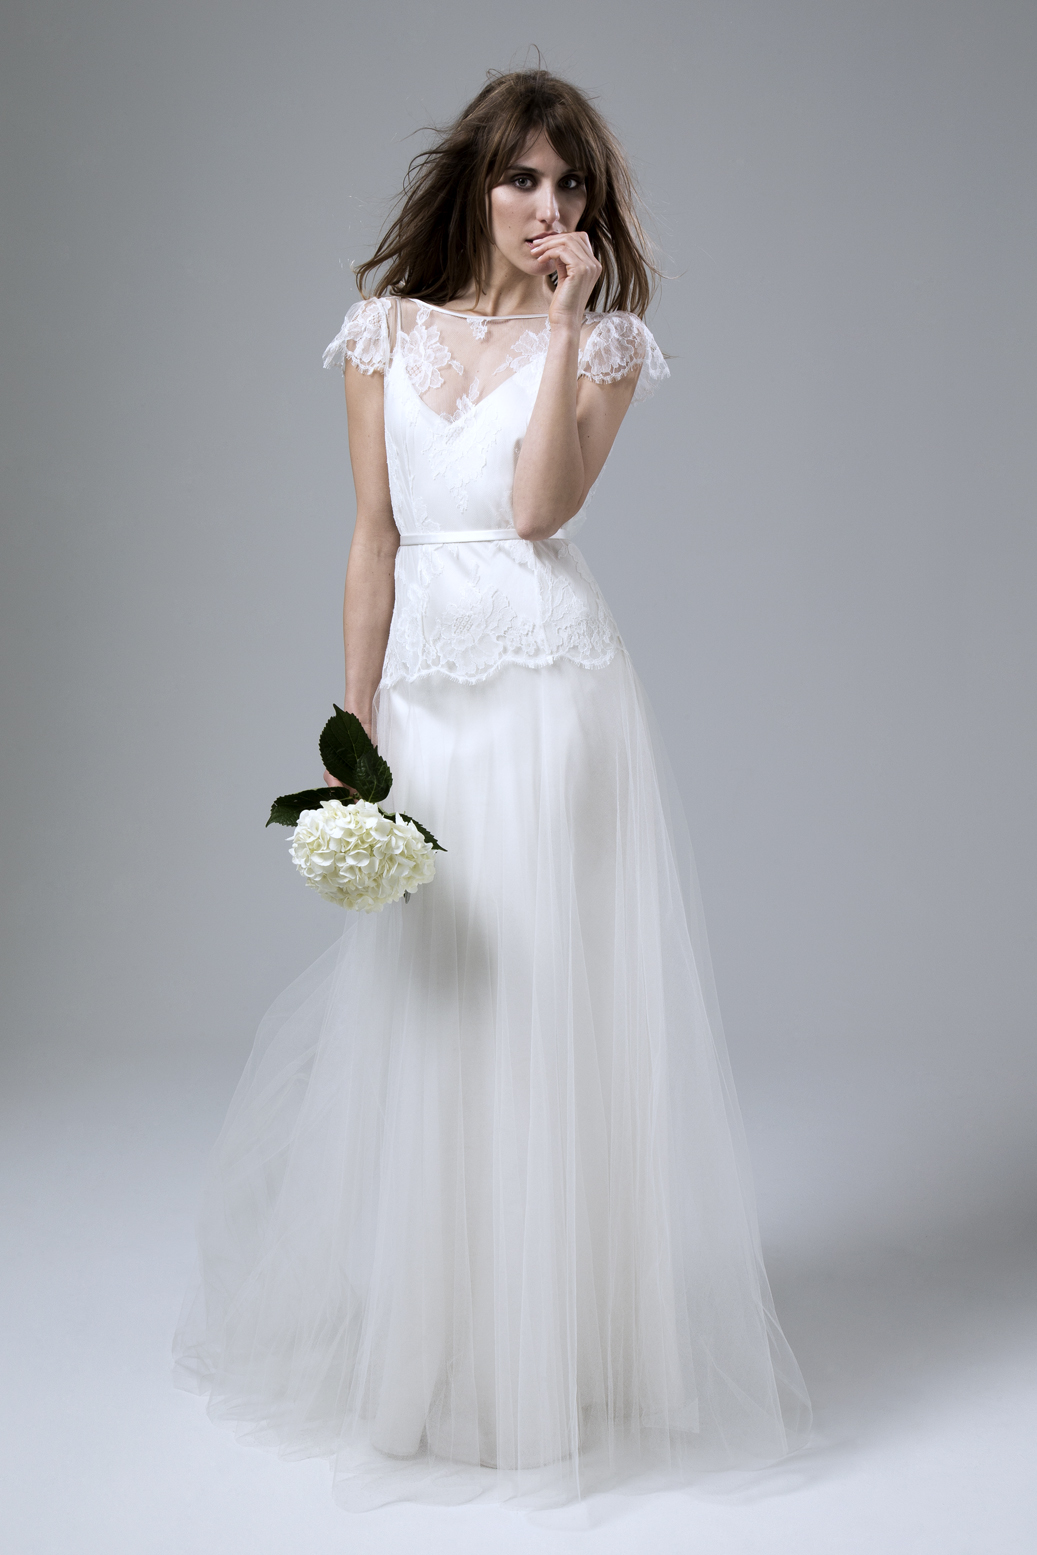 collection chantilly lace wedding dress Iris Jane French Chantilly Lace and Tulle Wedding Dress by Halfpenny London